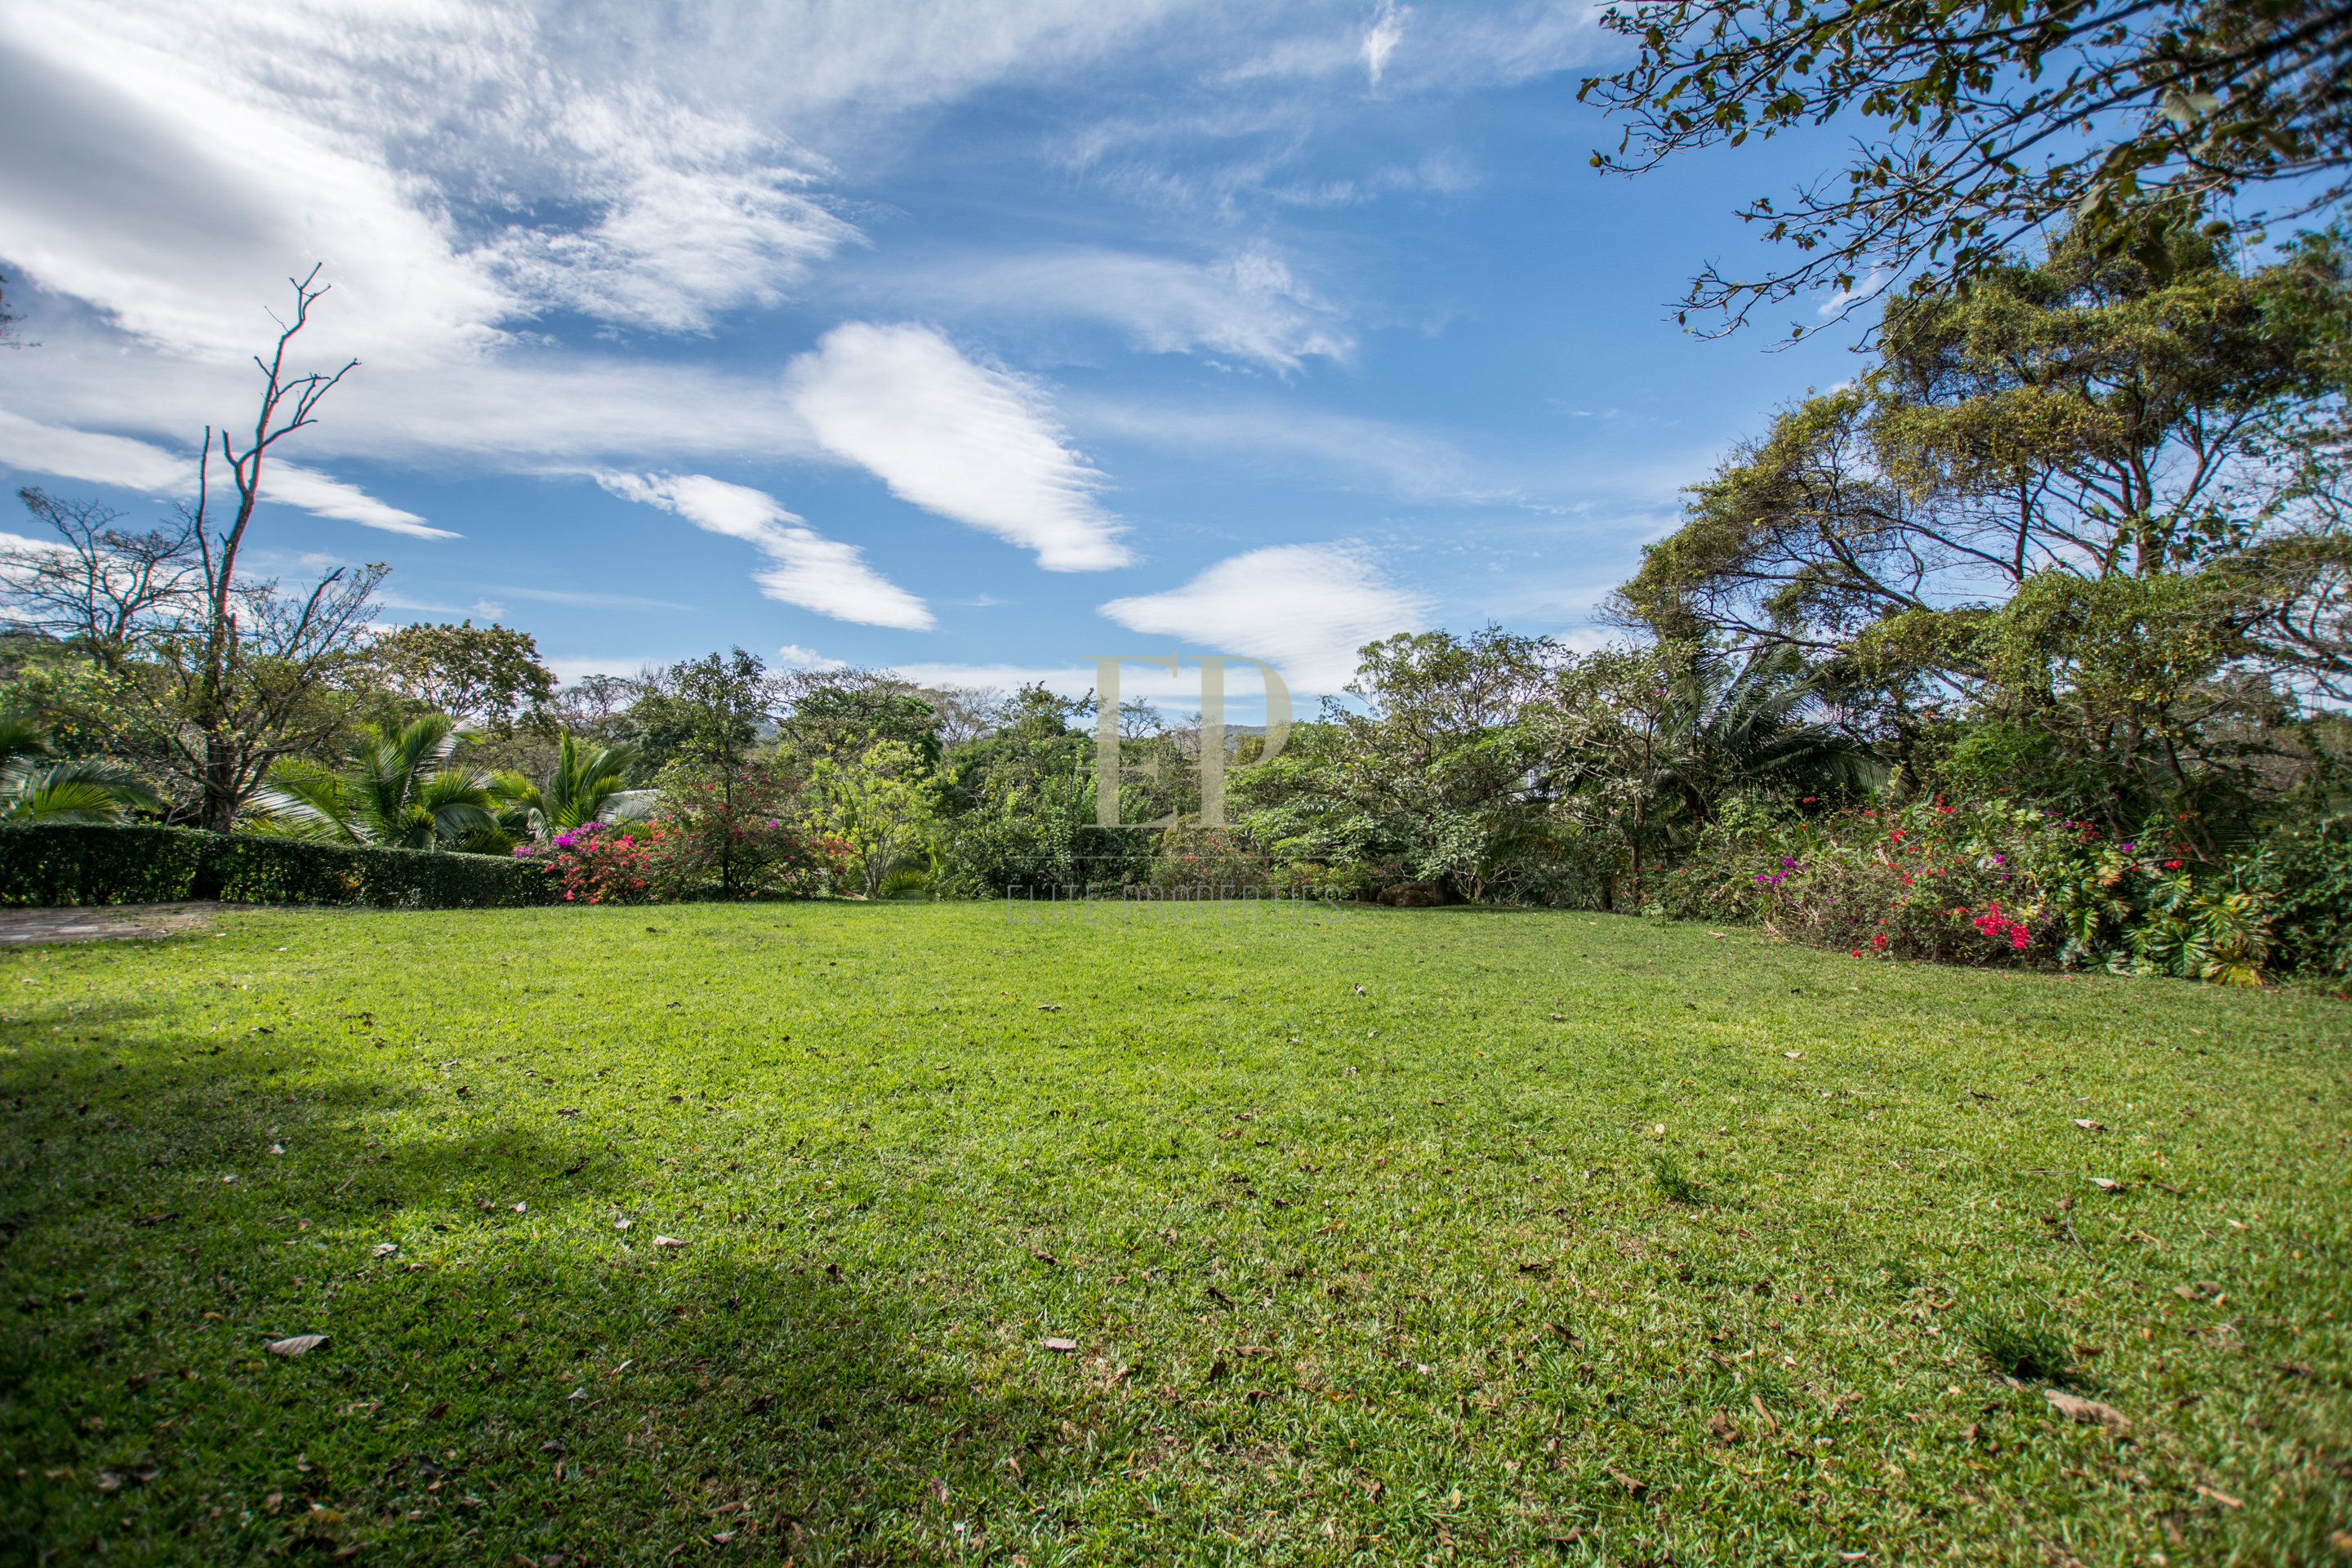 lot for sale in cuidad colon